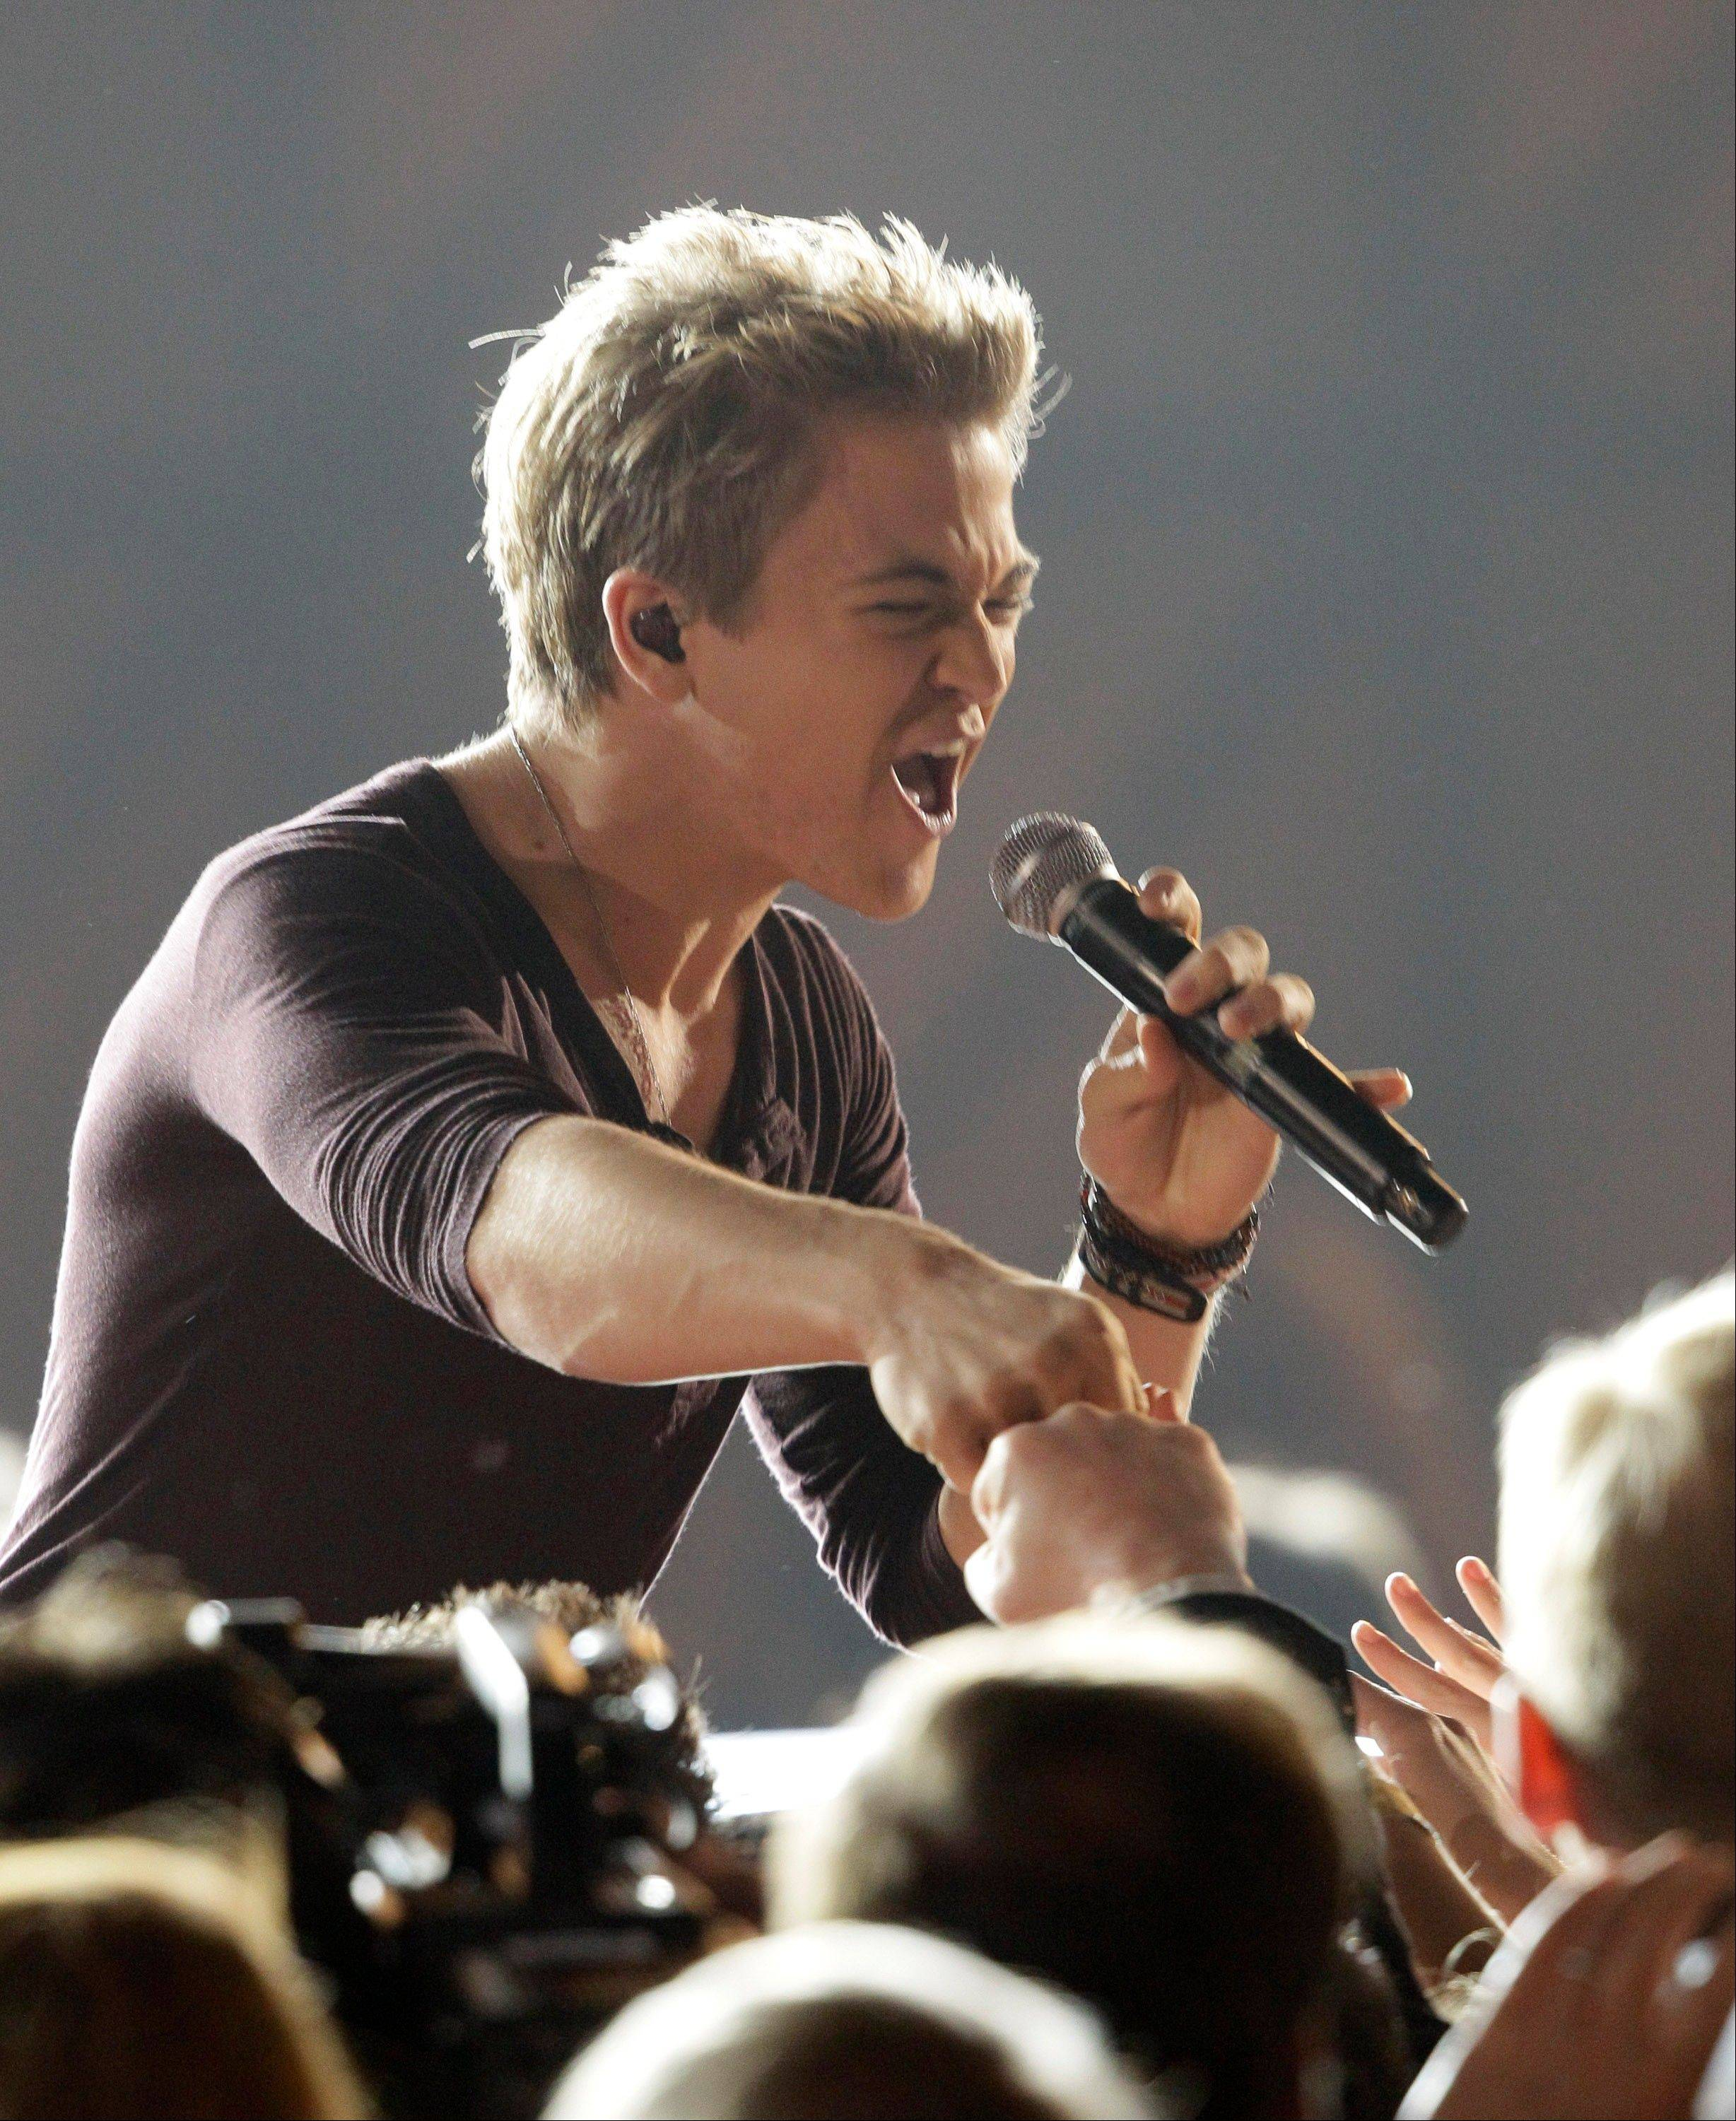 Hunter Hayes performs at the 46th Annual Country Music Awards at the Bridgestone Arena on Thursday, Nov. 1, 2012, in Nashville, Tenn.